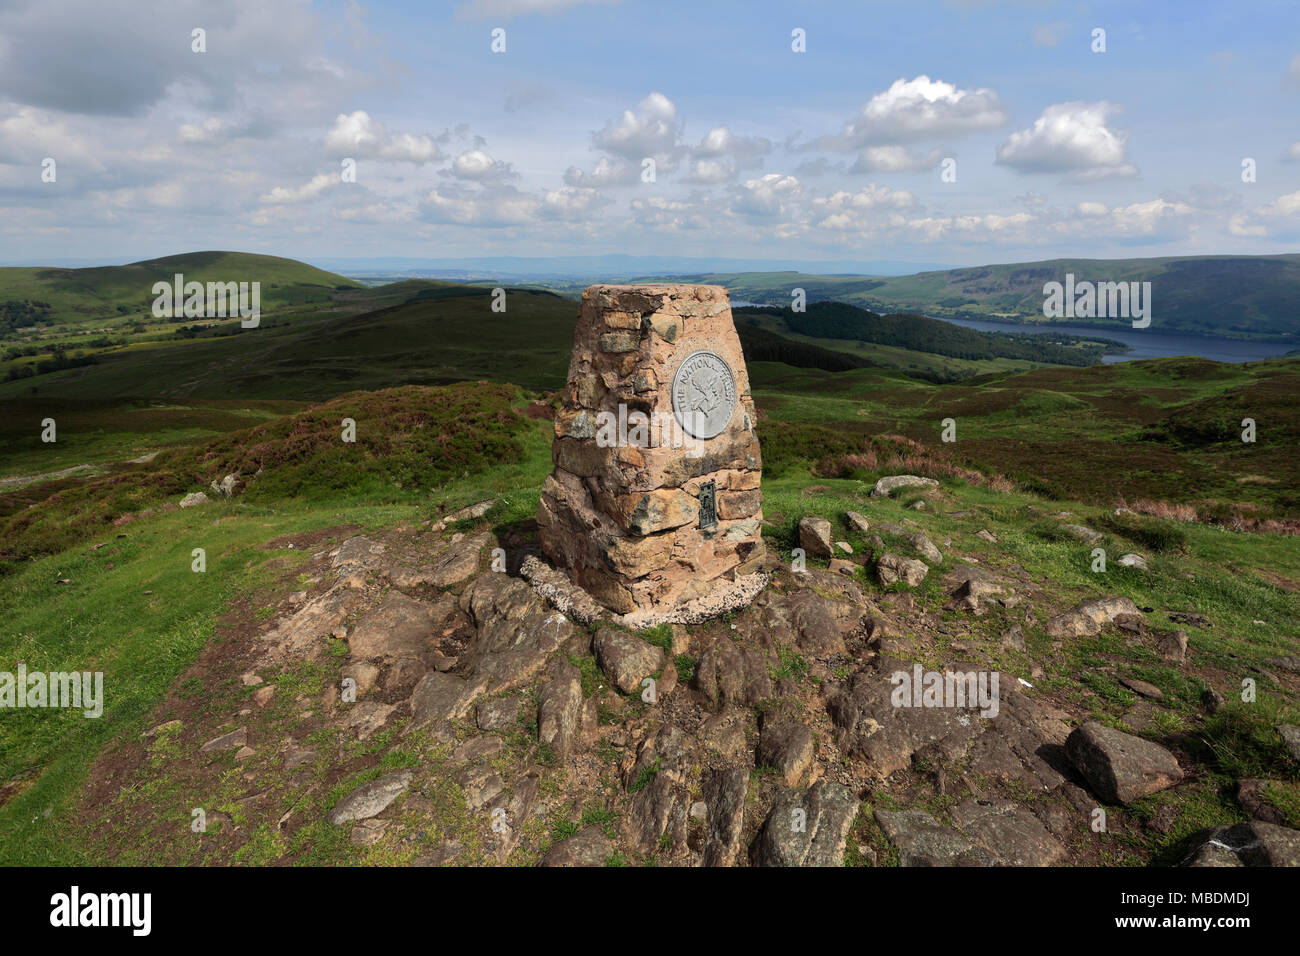 OS trig point on the summit of Gowbarrow fell, Lake District National Park, Cumbria County, England, UK Stock Photo